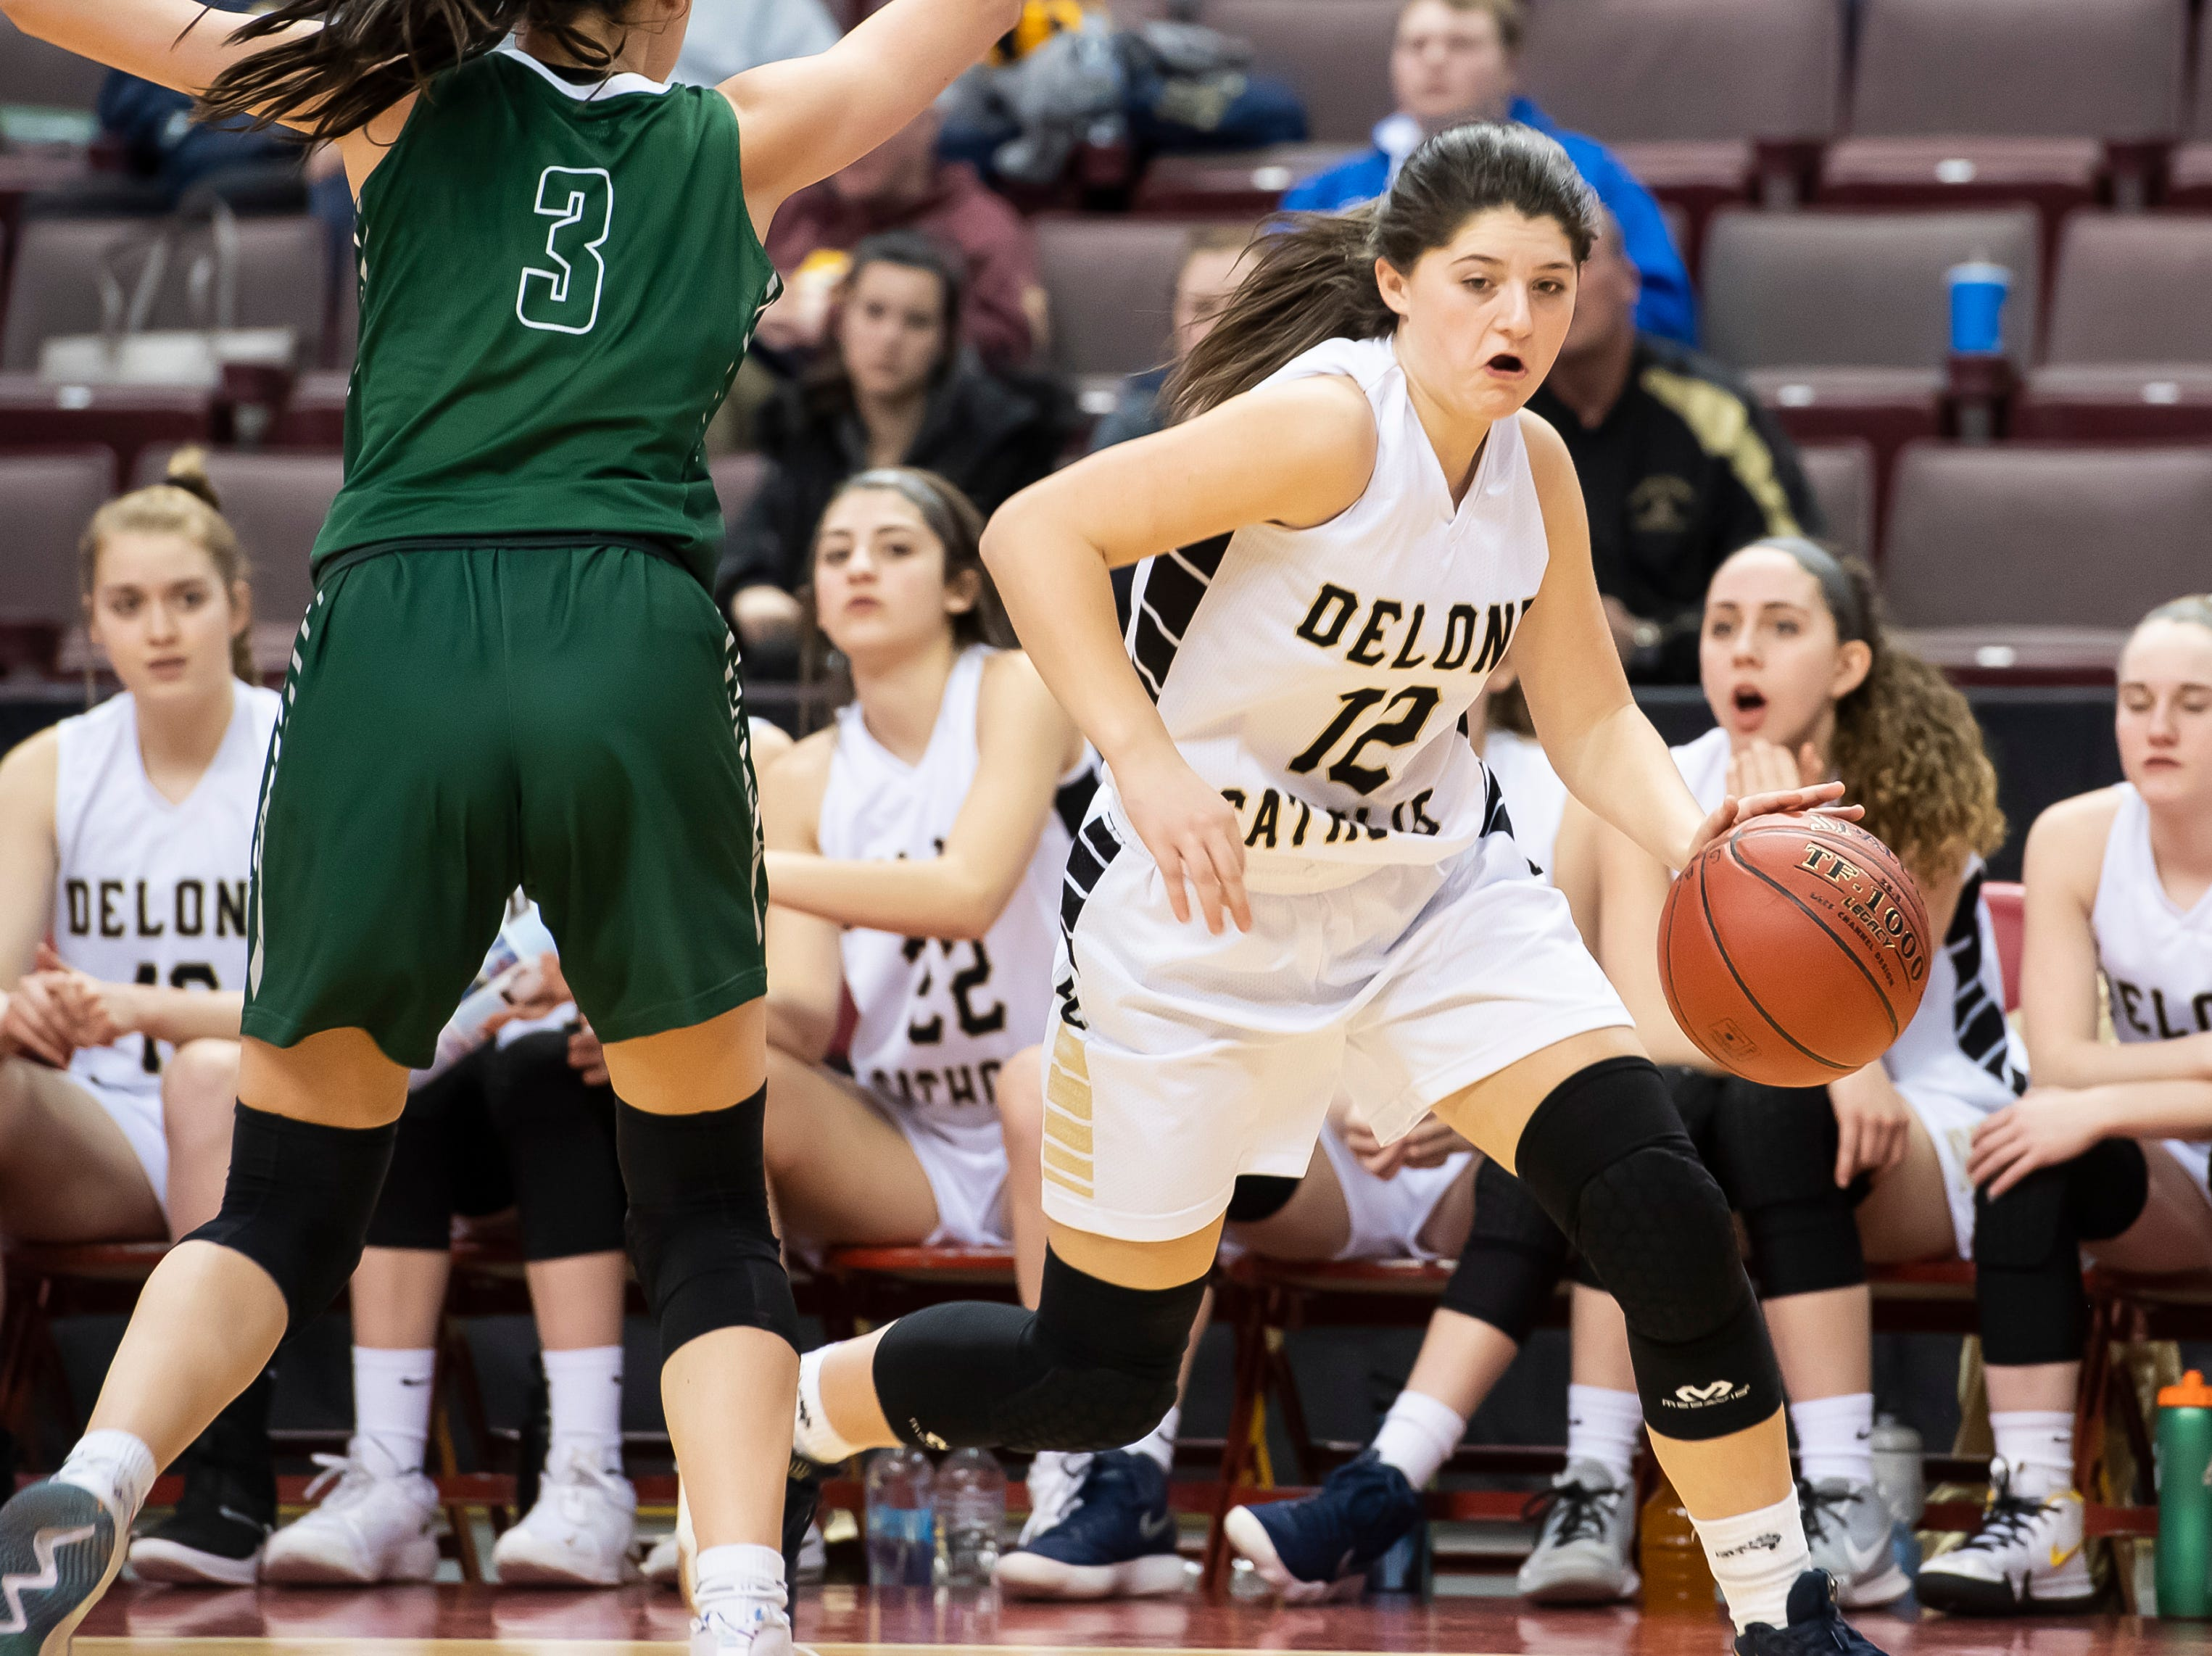 Delone Catholic's Giana Hoddinott dribbles around Trinity's Ava Stevenson during the District 3 3A girls championship game at the Giant Center in Hershey Wednesday, Feb. 27, 2019. Hoddinott lead the Squirettes with 10 points.